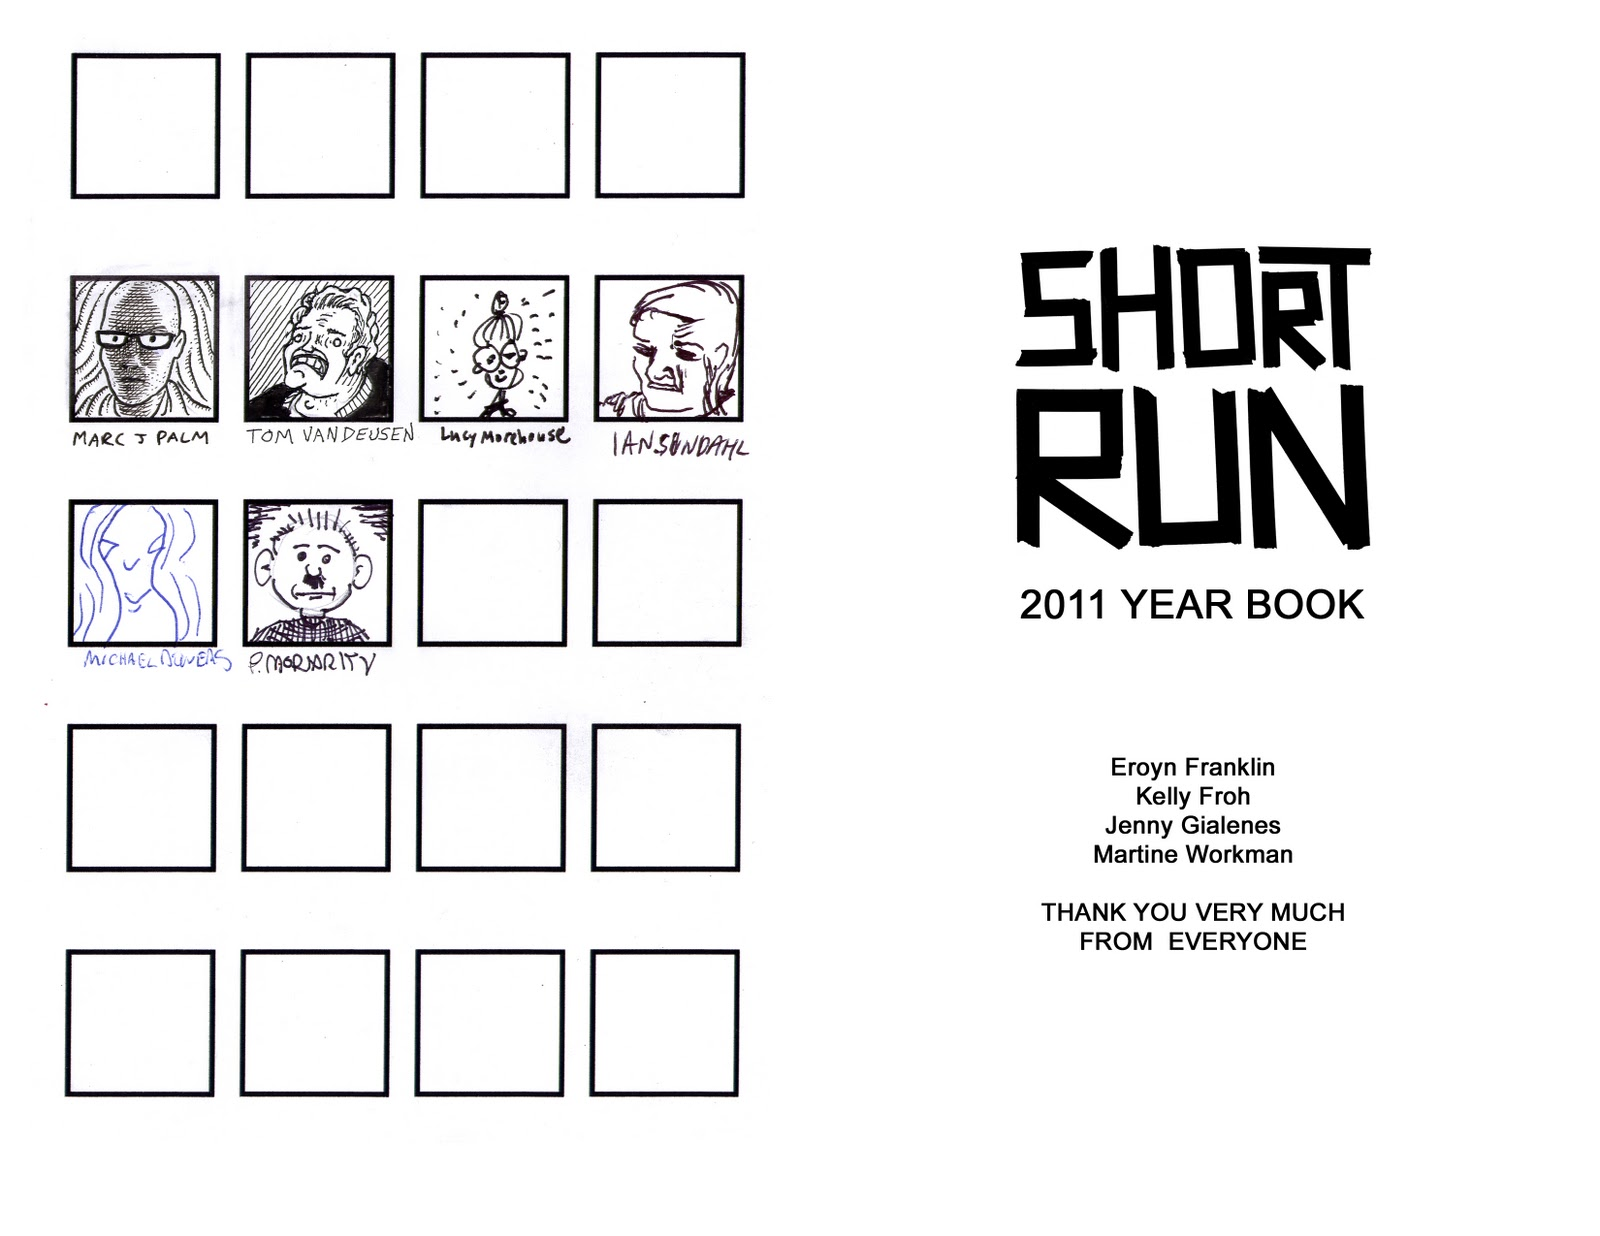 Swellzombie's Lair of the Psychic Creature: Short Run 2011